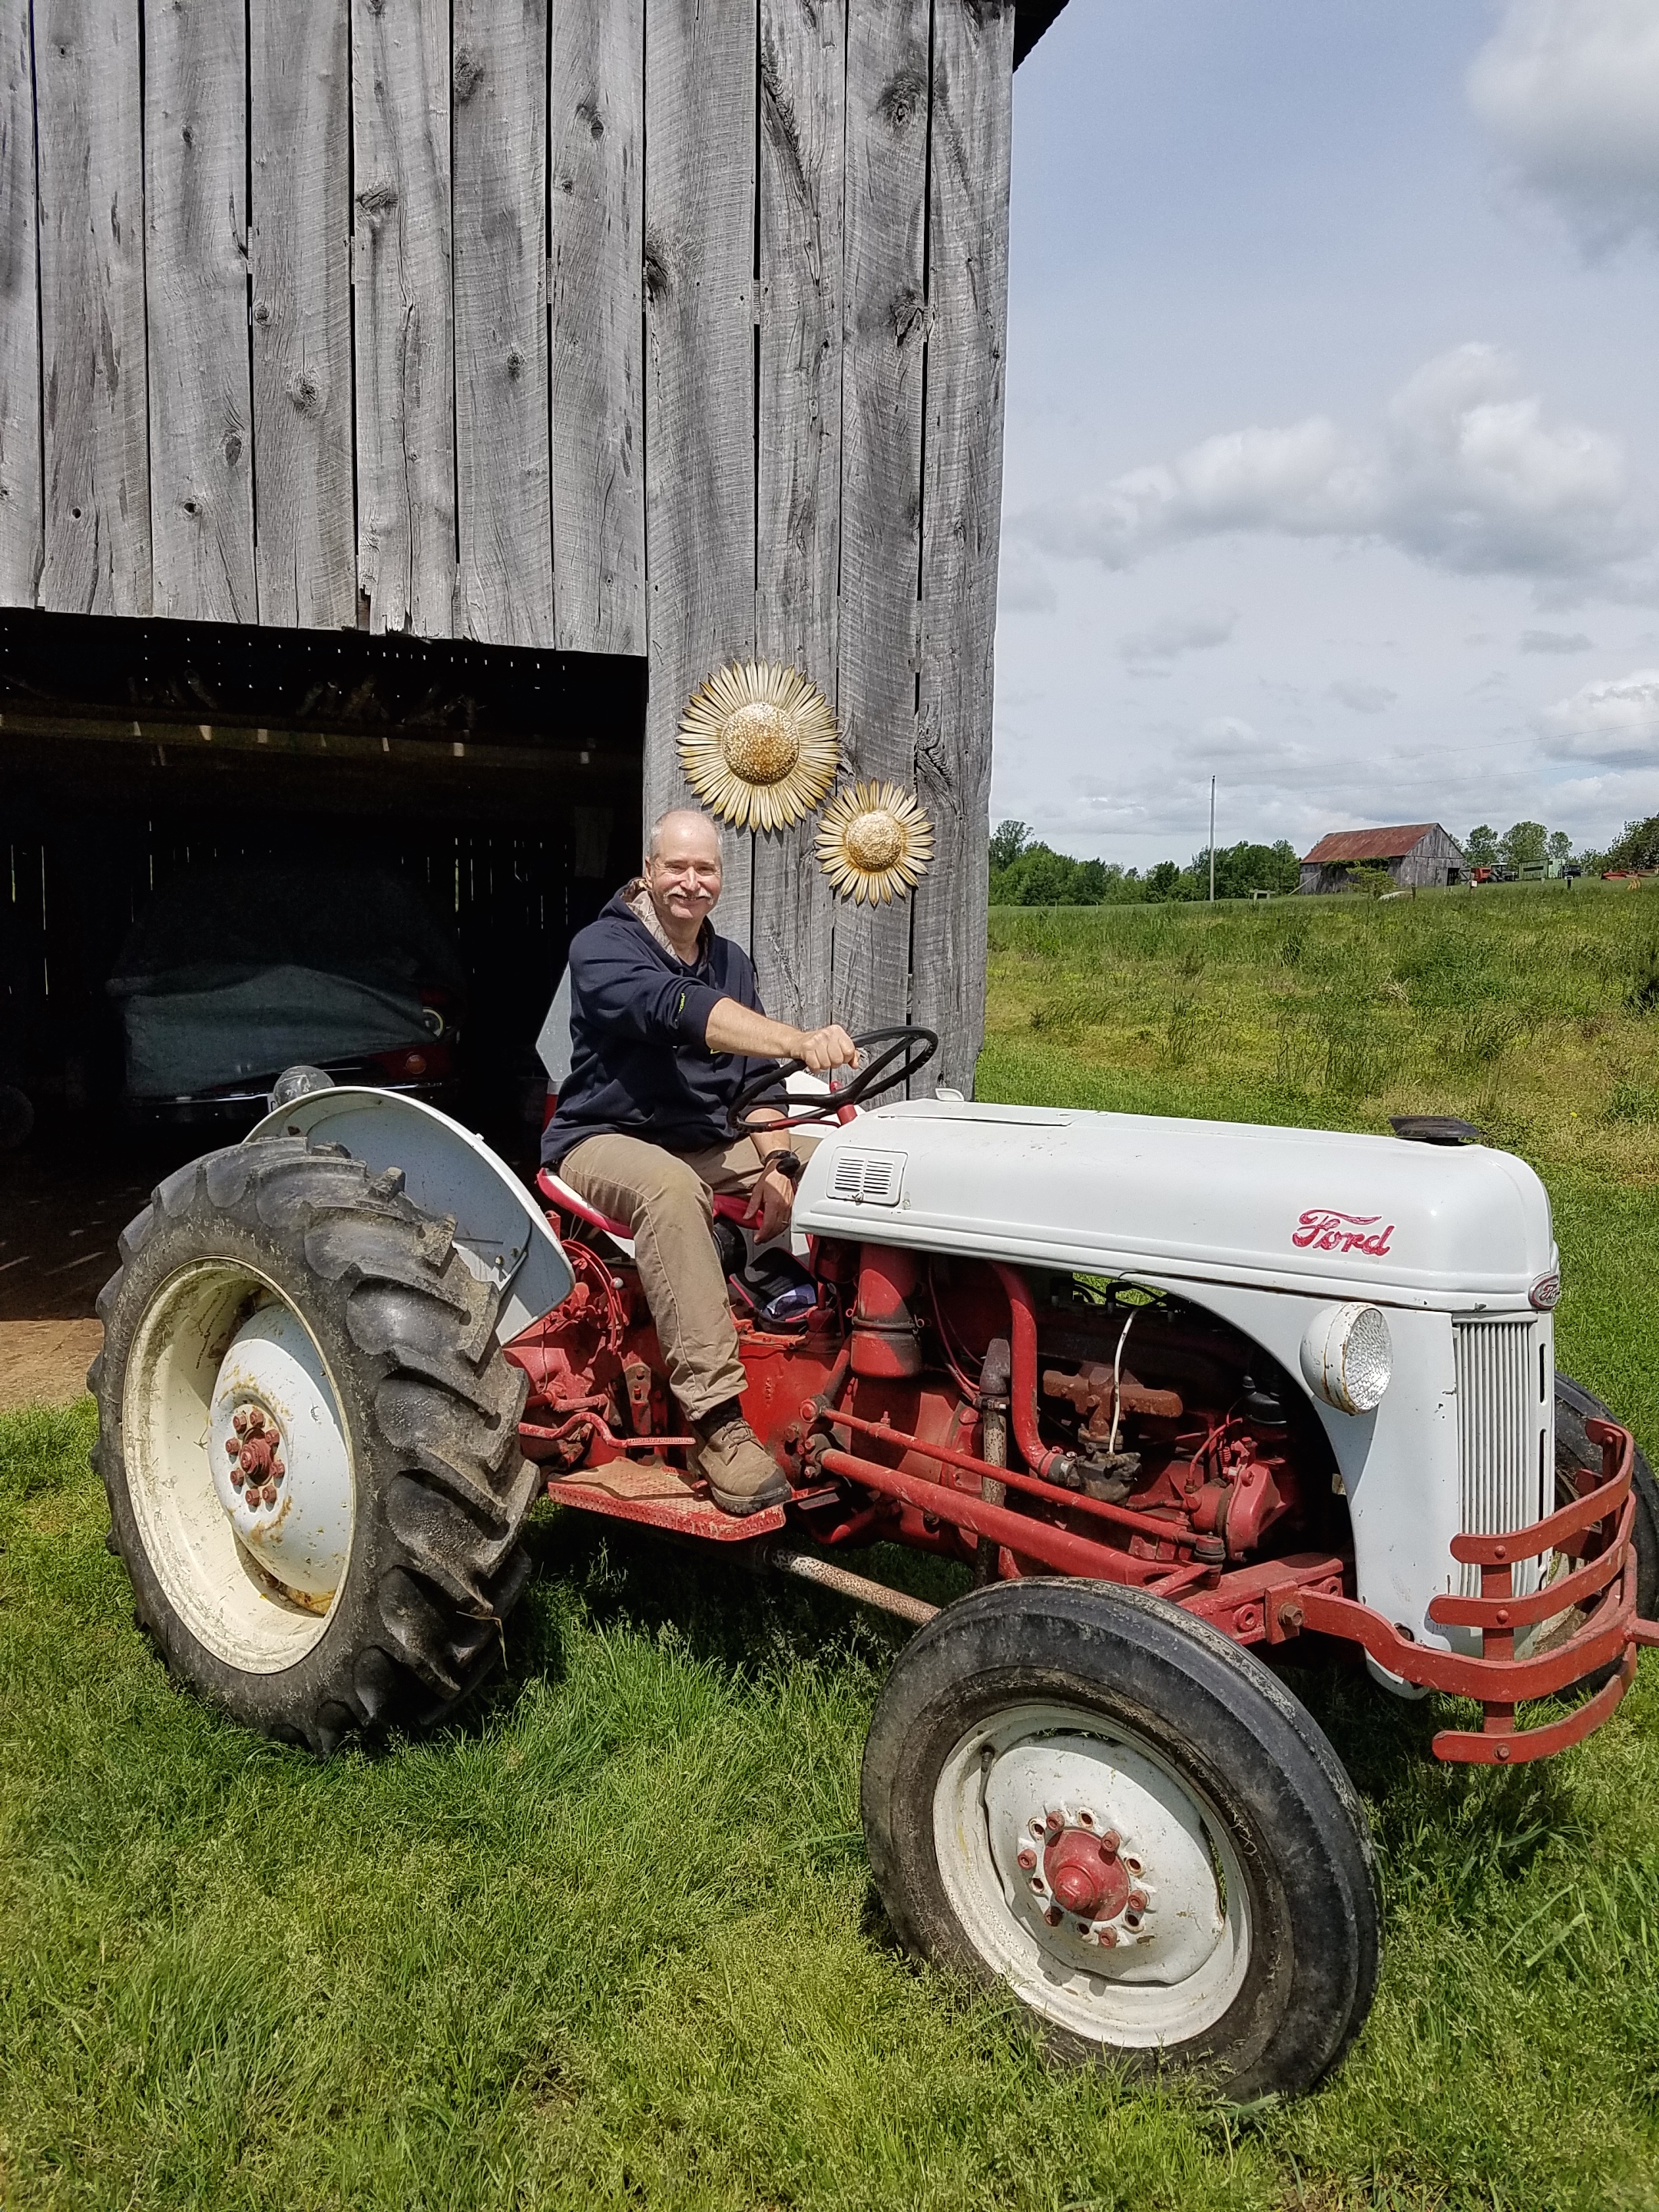 Former firefighter, Gary Palmer, rides his vintage tractor at Holiday memories Farm. (Photo by Susan Able)